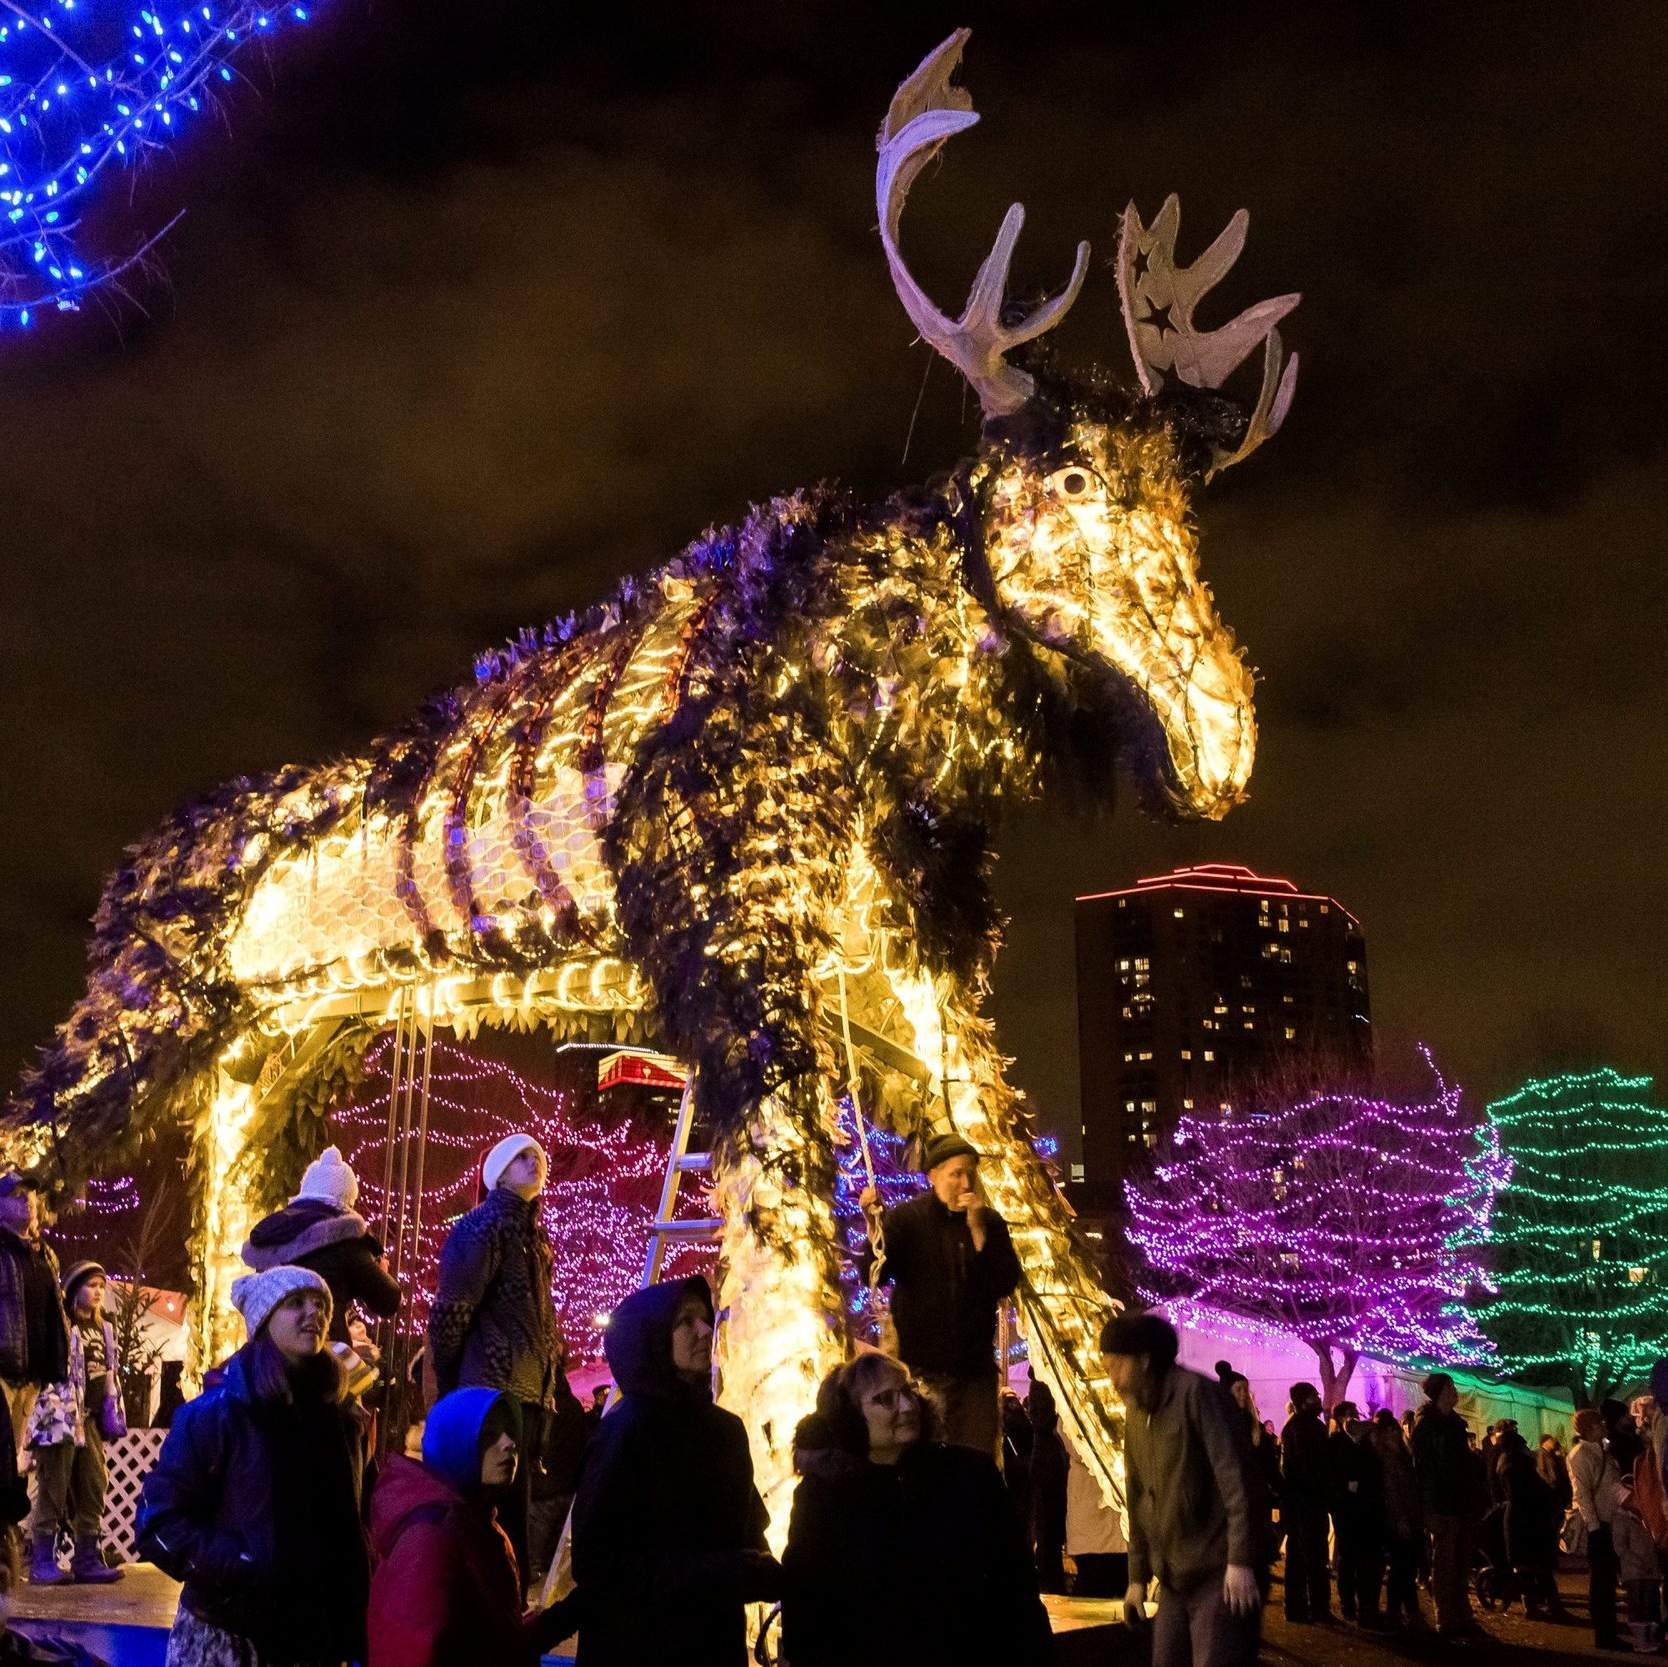 a lit up sculpture called wolf moose featured last year as well as this year in the 2017 holidazzle event in loring park in minneapolis